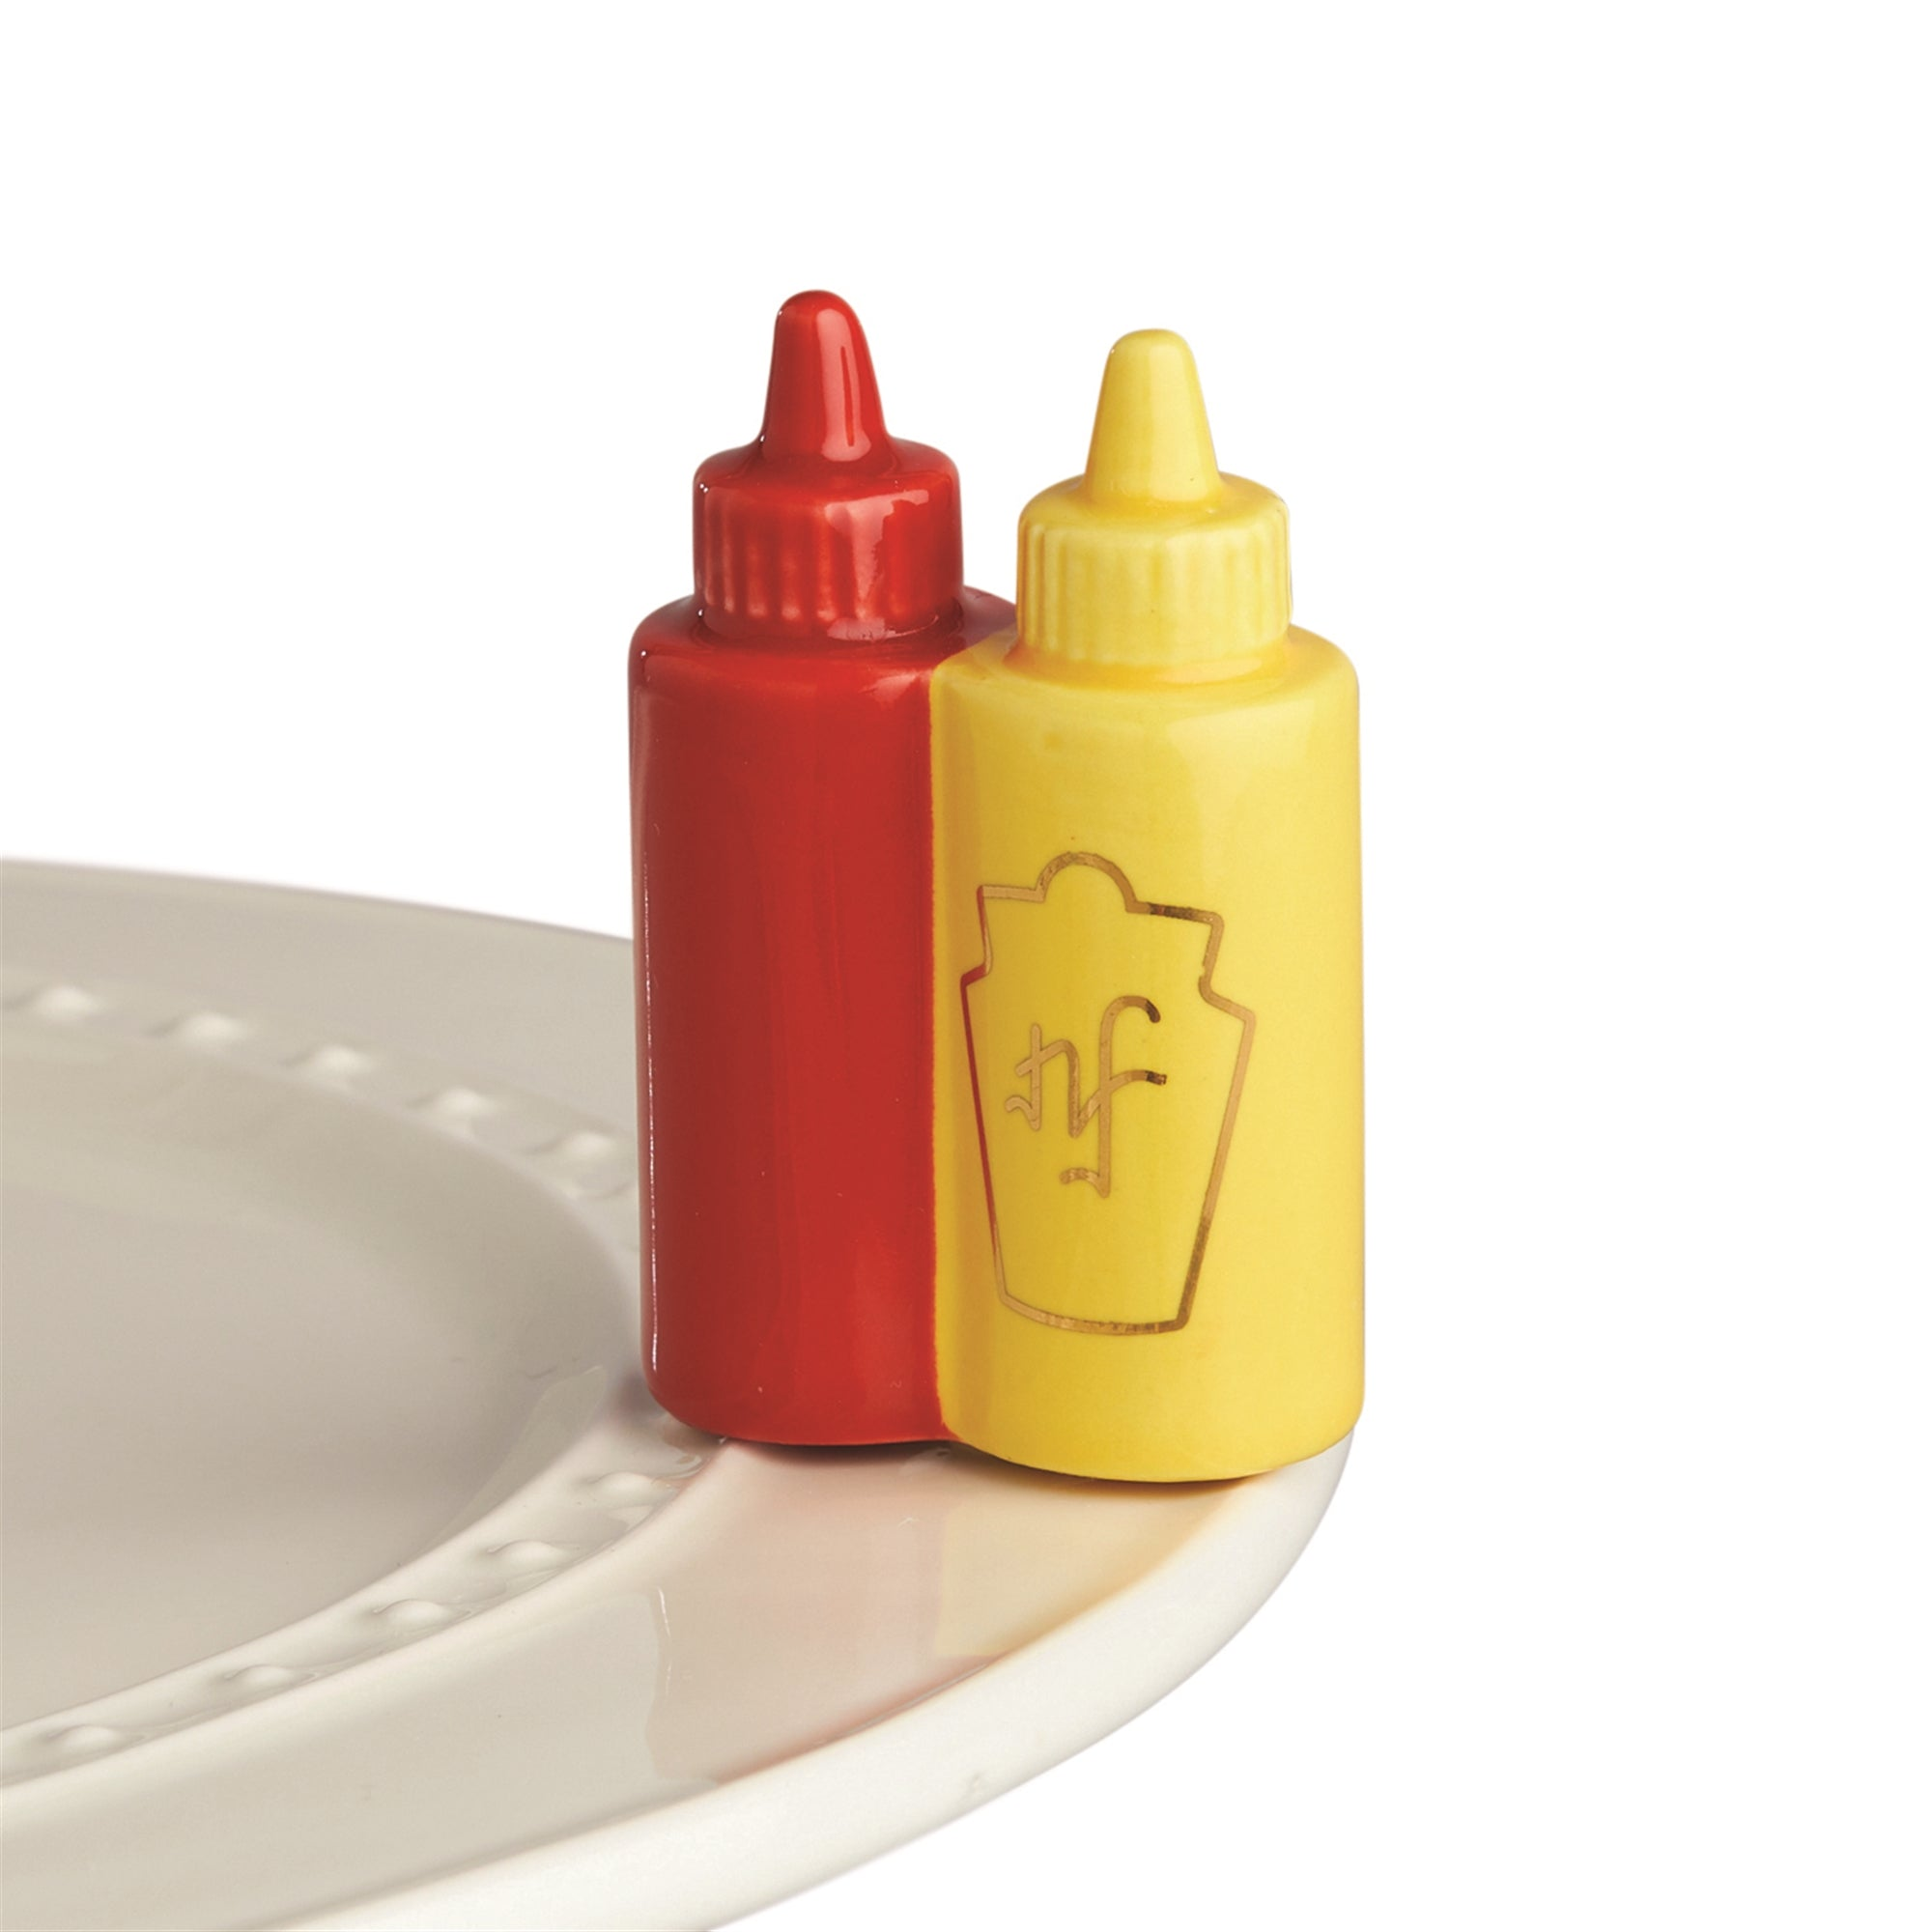 "For the cutest cookout on the block, just add this Nora Fleming Main Squeeze Mini! You'll love the gold ""nf"" emblem on both the sunny yellow mustard and the jubilant red ketchup! Add a colorful mini to any Nora Fleming stoneware, wood, or melamine base piece! Hand-painted and as sweet as can be - once you get one, you'll want mini, mini more!"